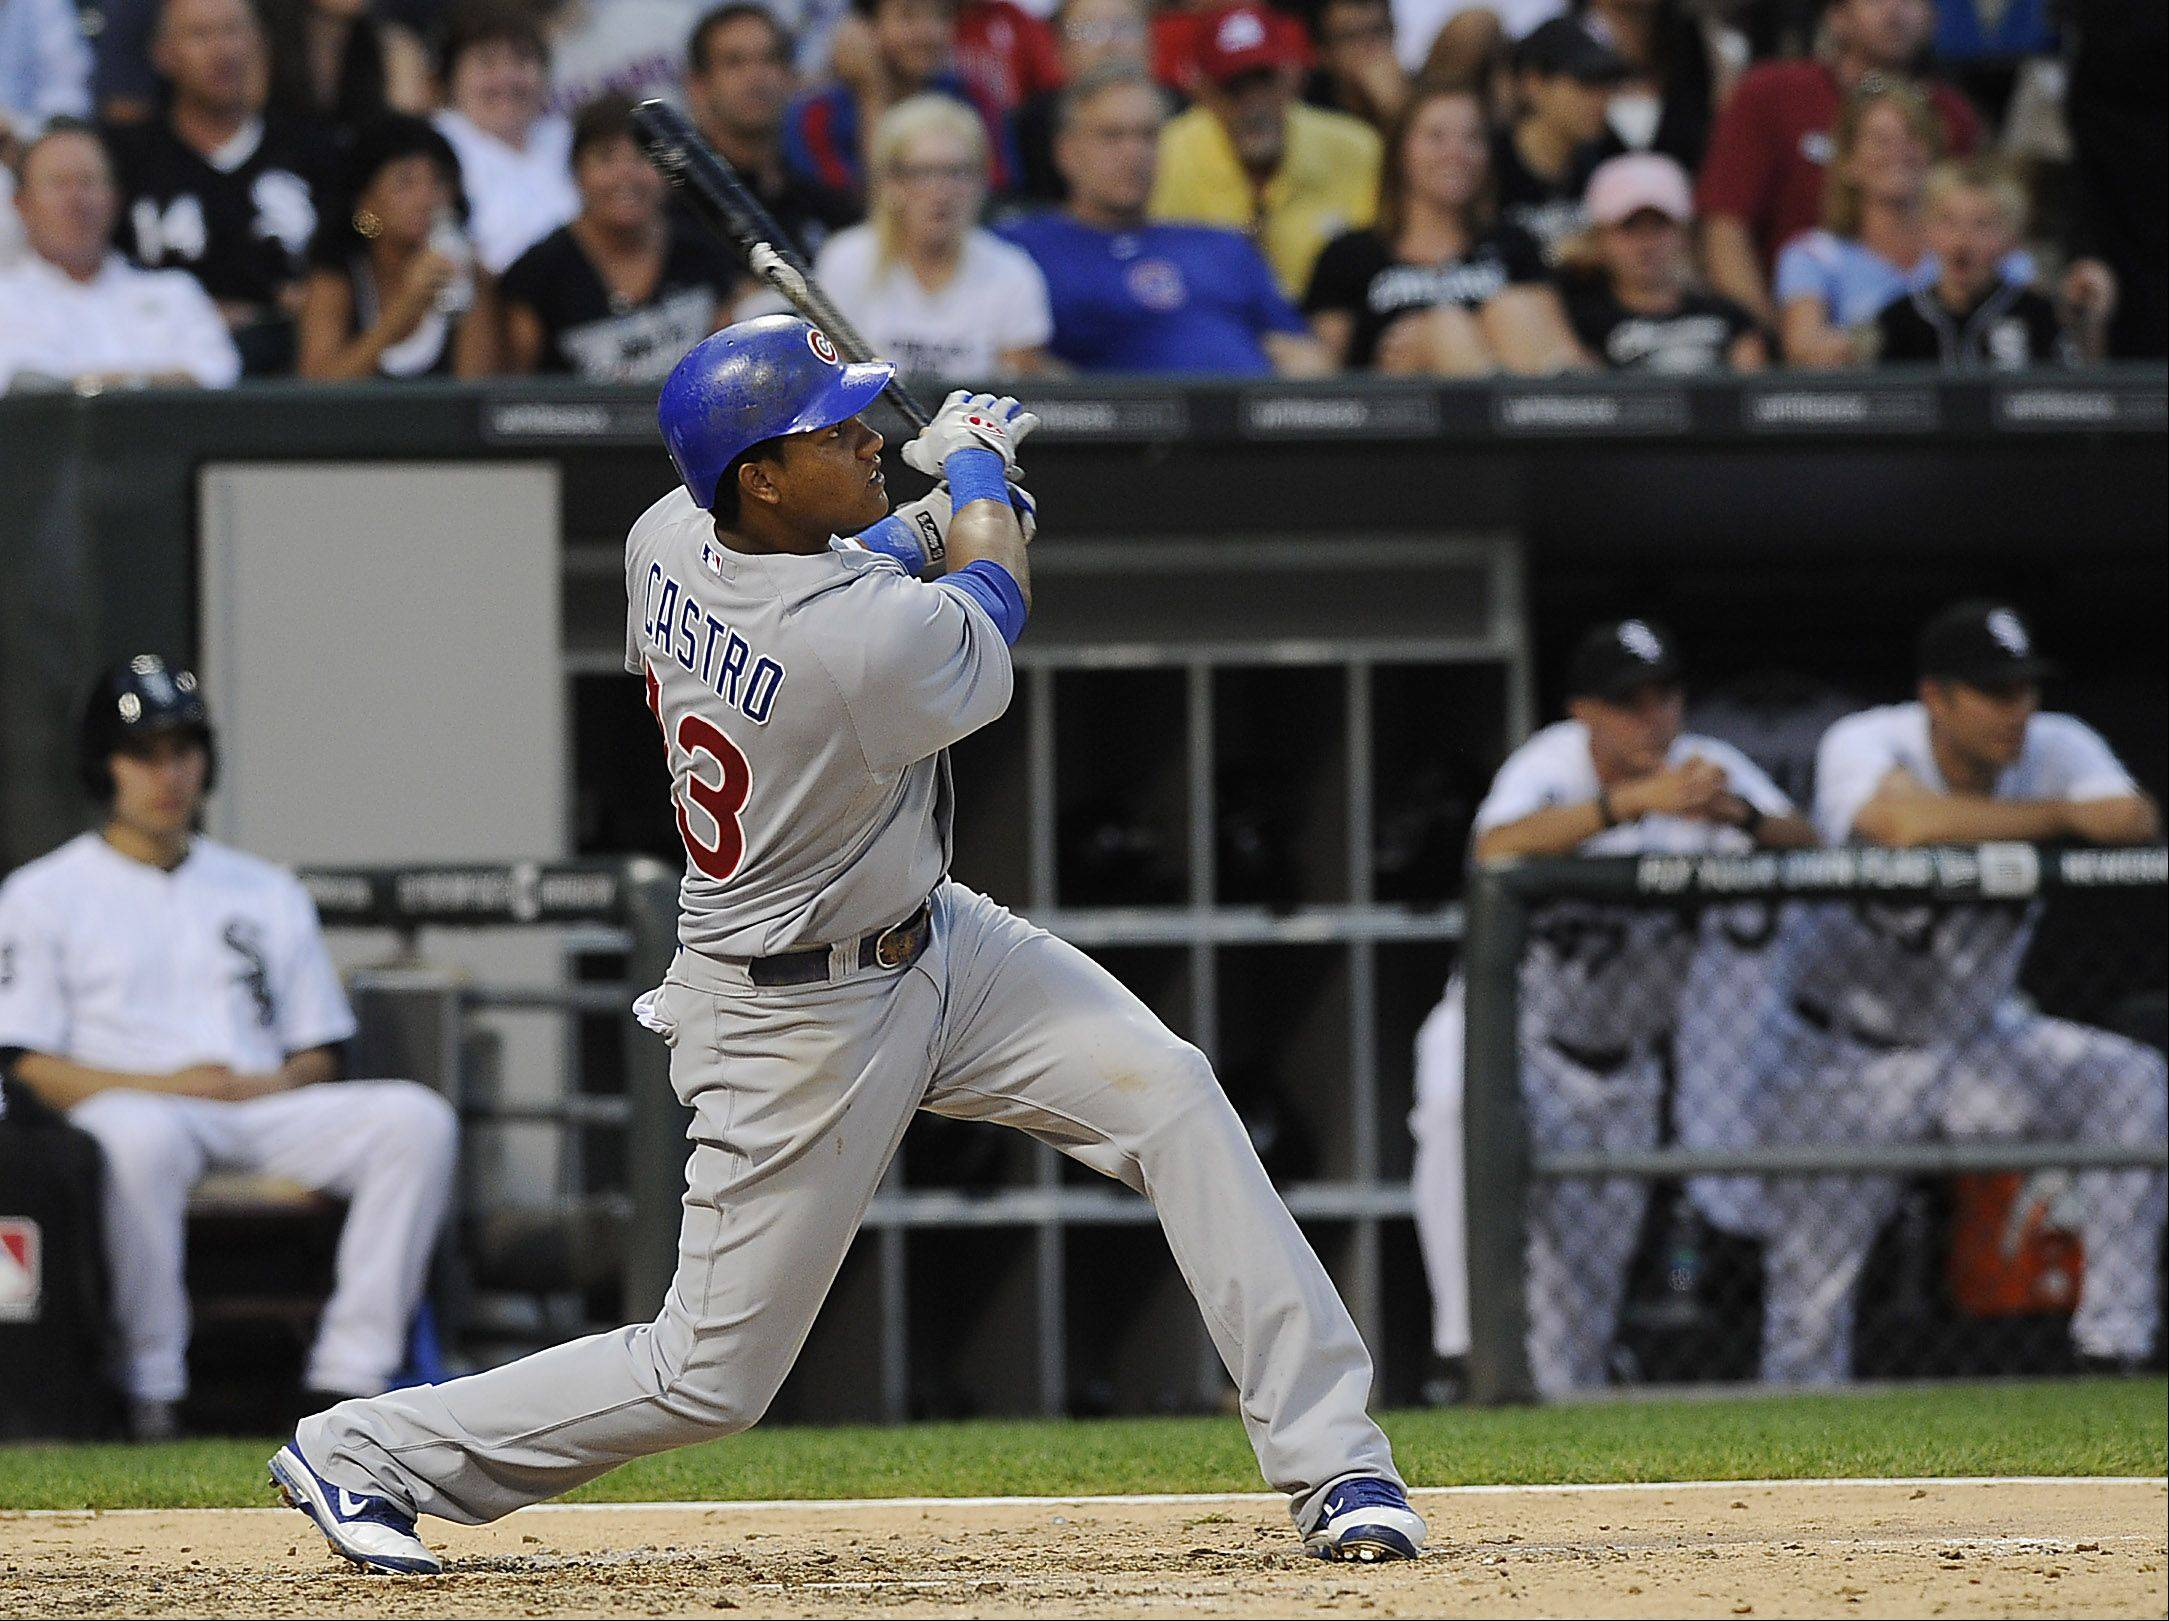 Chicago Cubs' Starlin Castro hits a fifth inning home run.